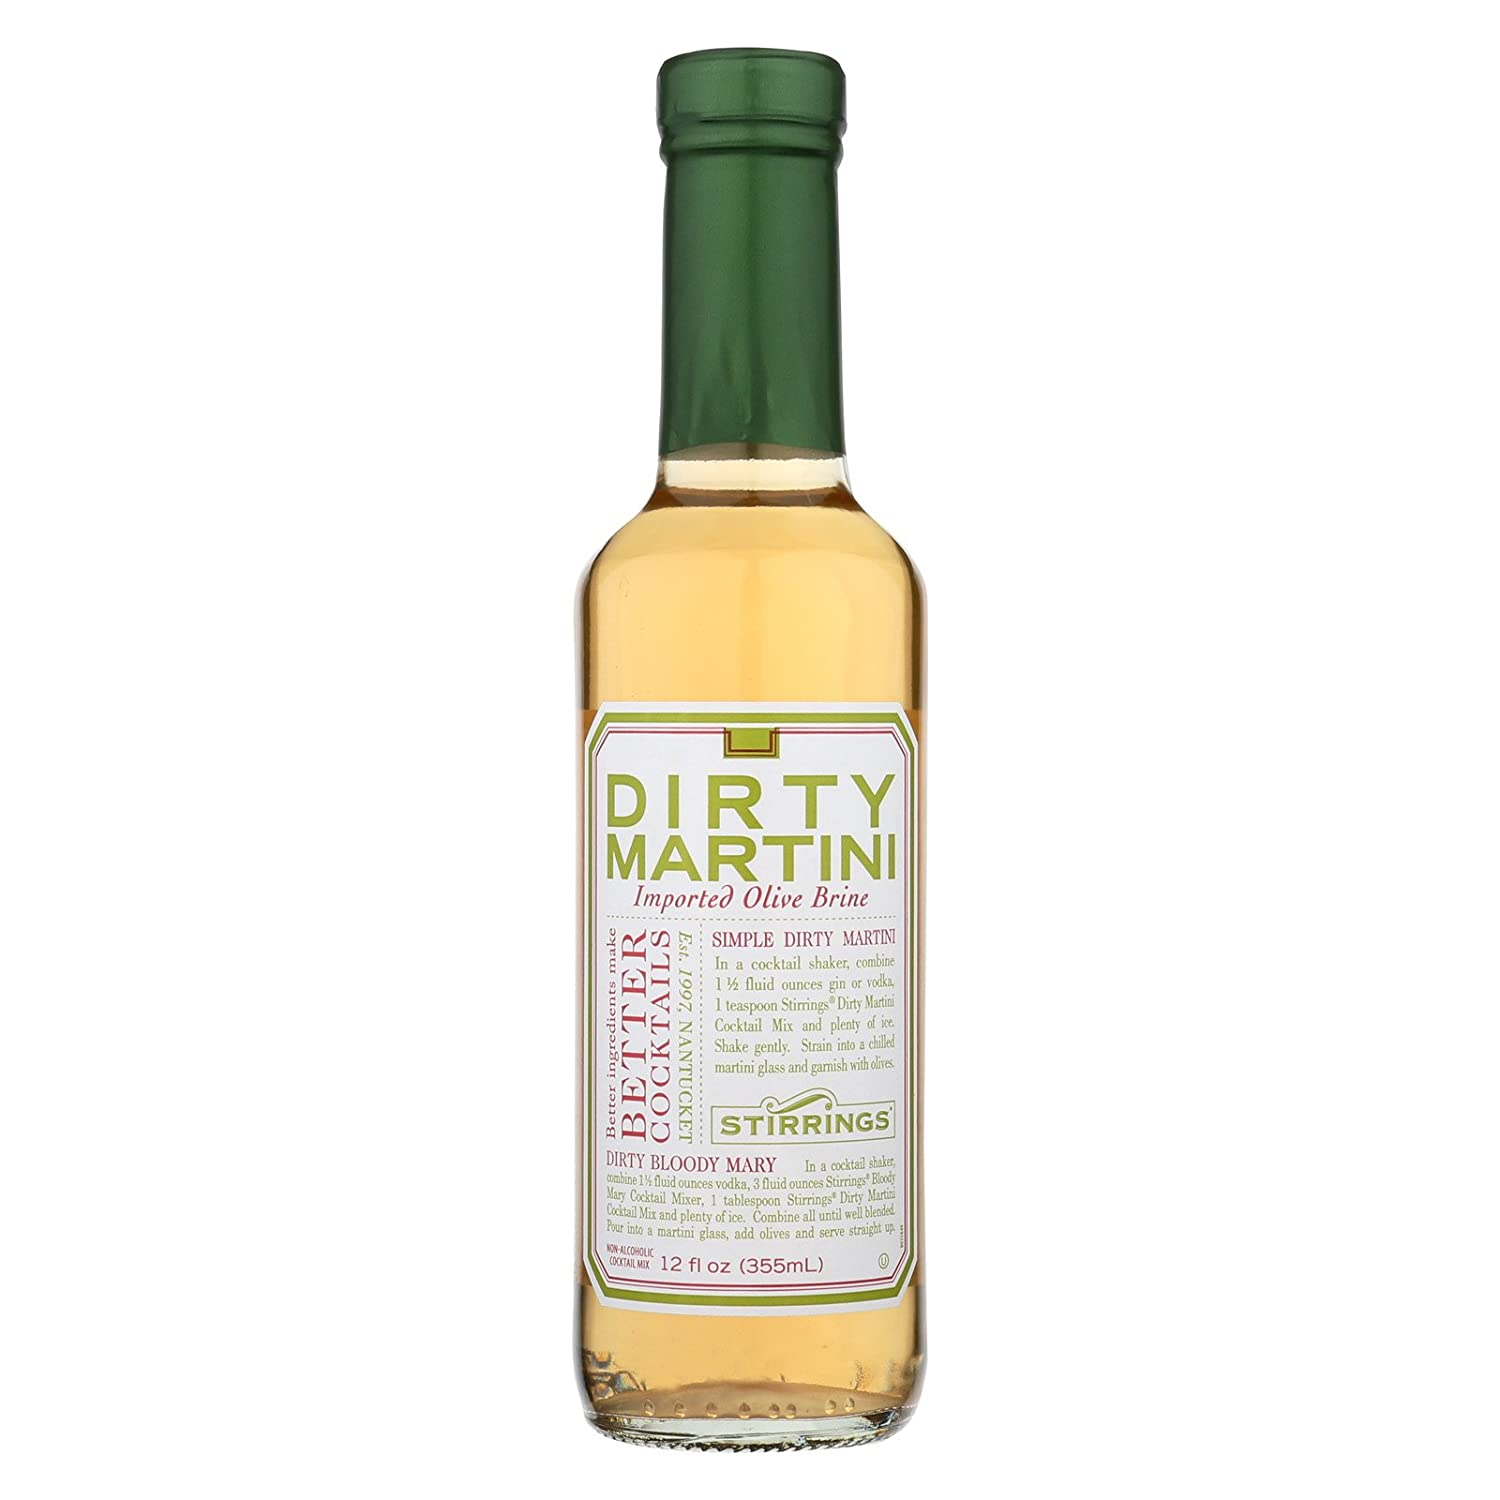 Stirrings All Natural Dirty Martini Cocktail Mixer